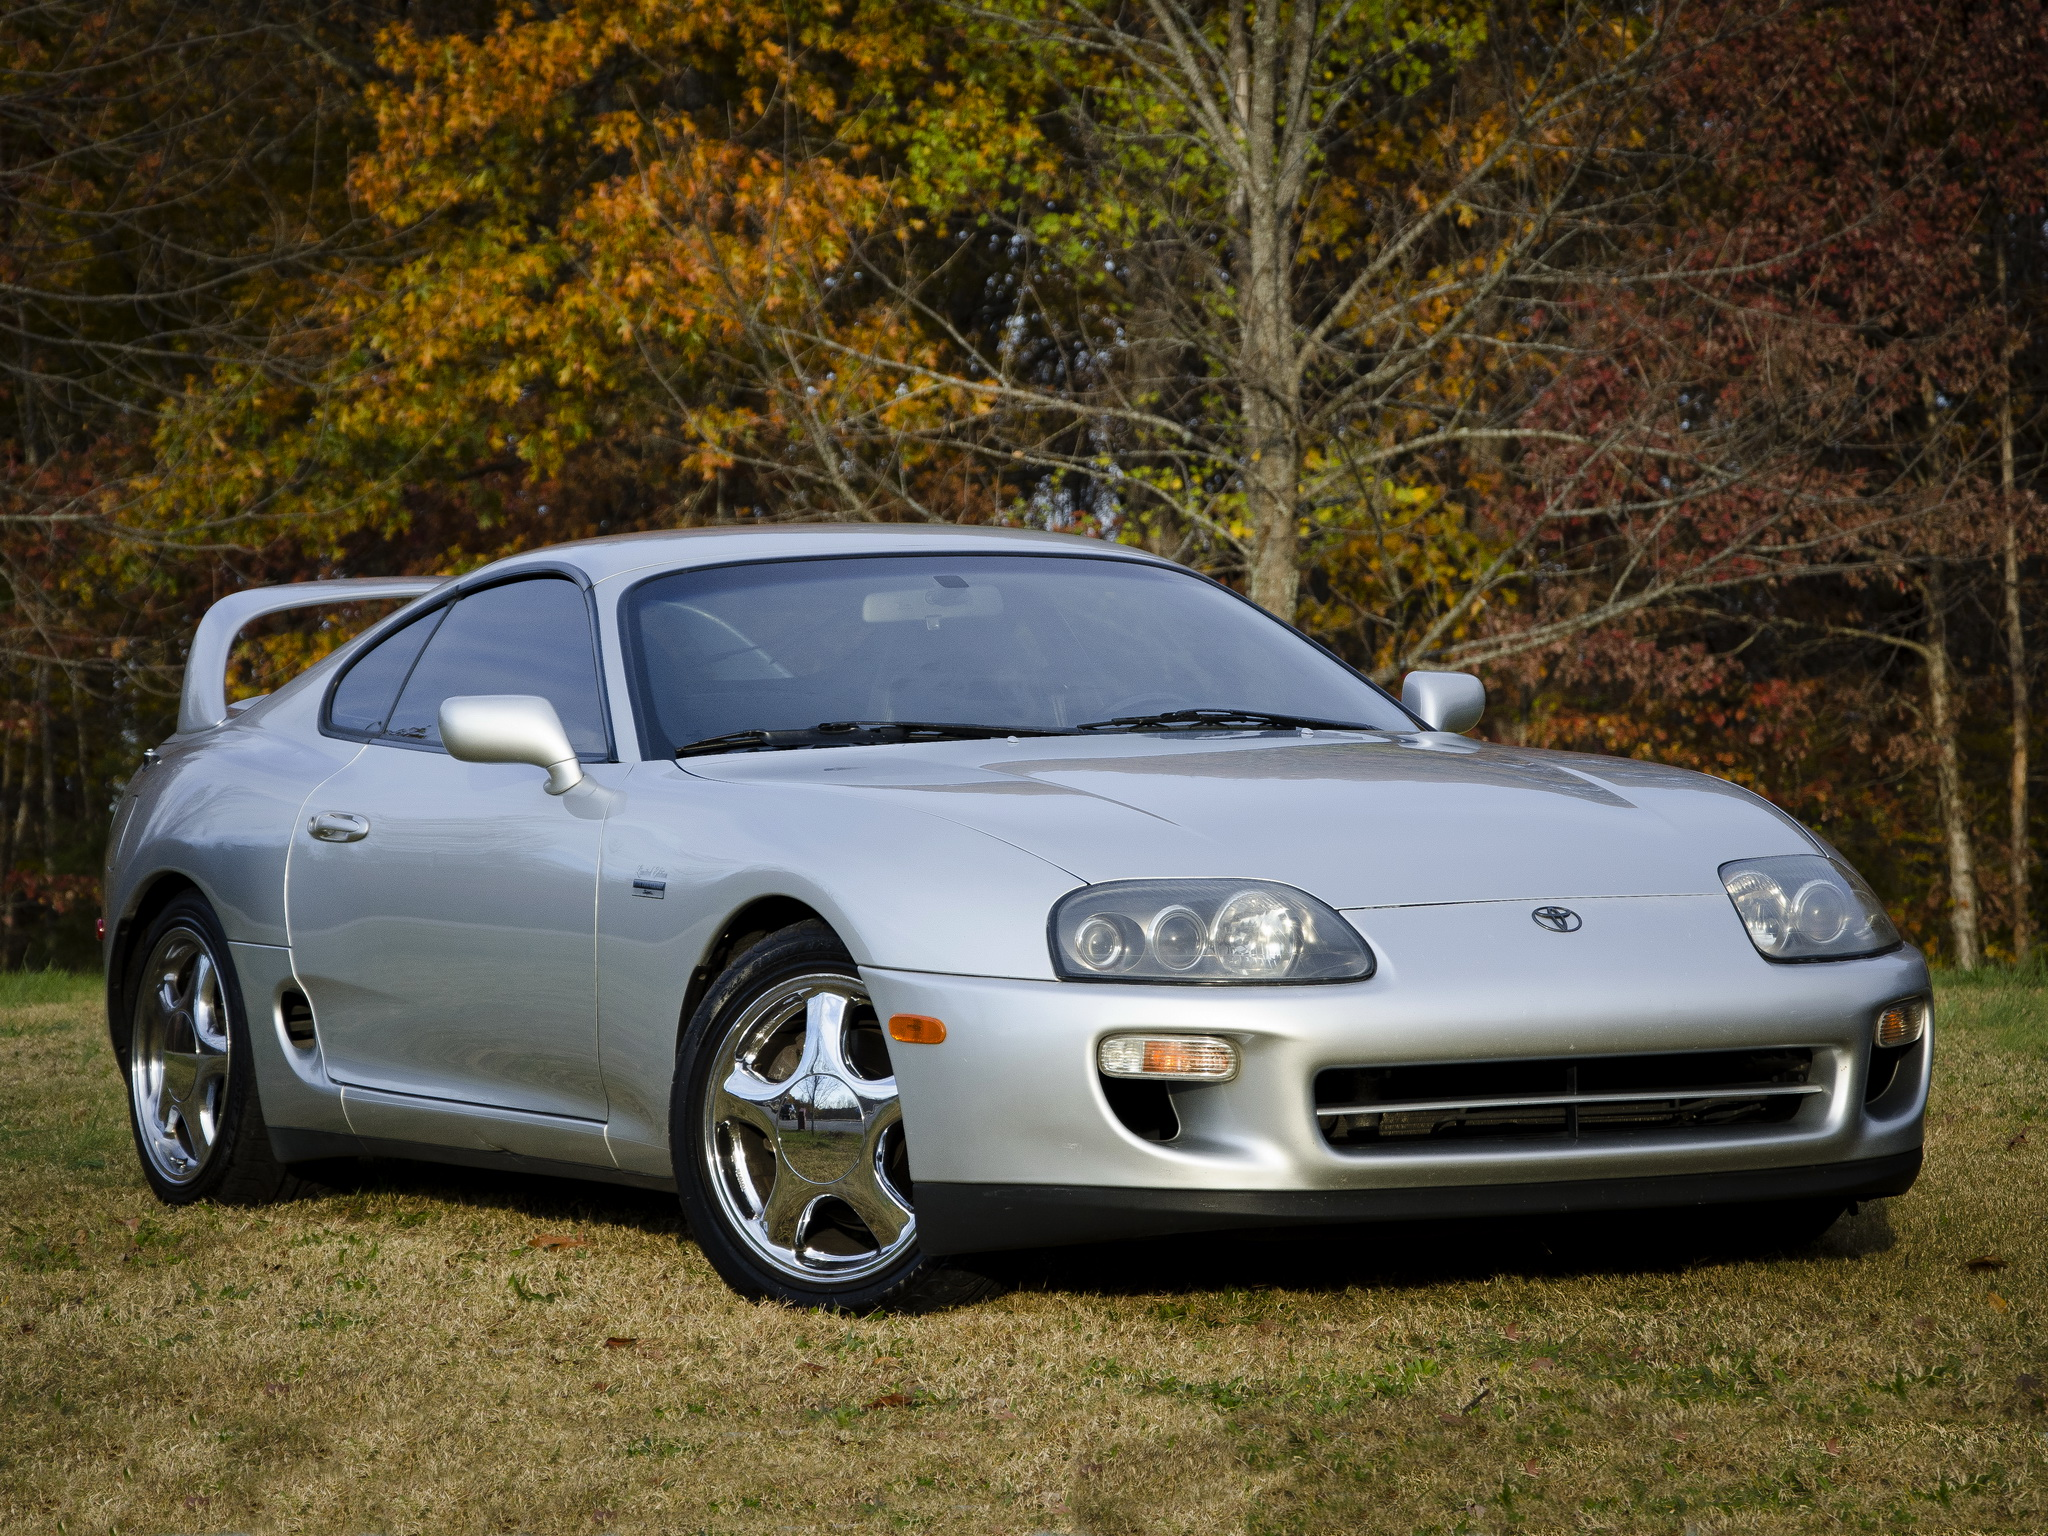 1997 toyota supra turbo sport roof us spec jza80 f wallpaper 1997 toyota supra turbo sport roof us spec jza80 f wallpaper